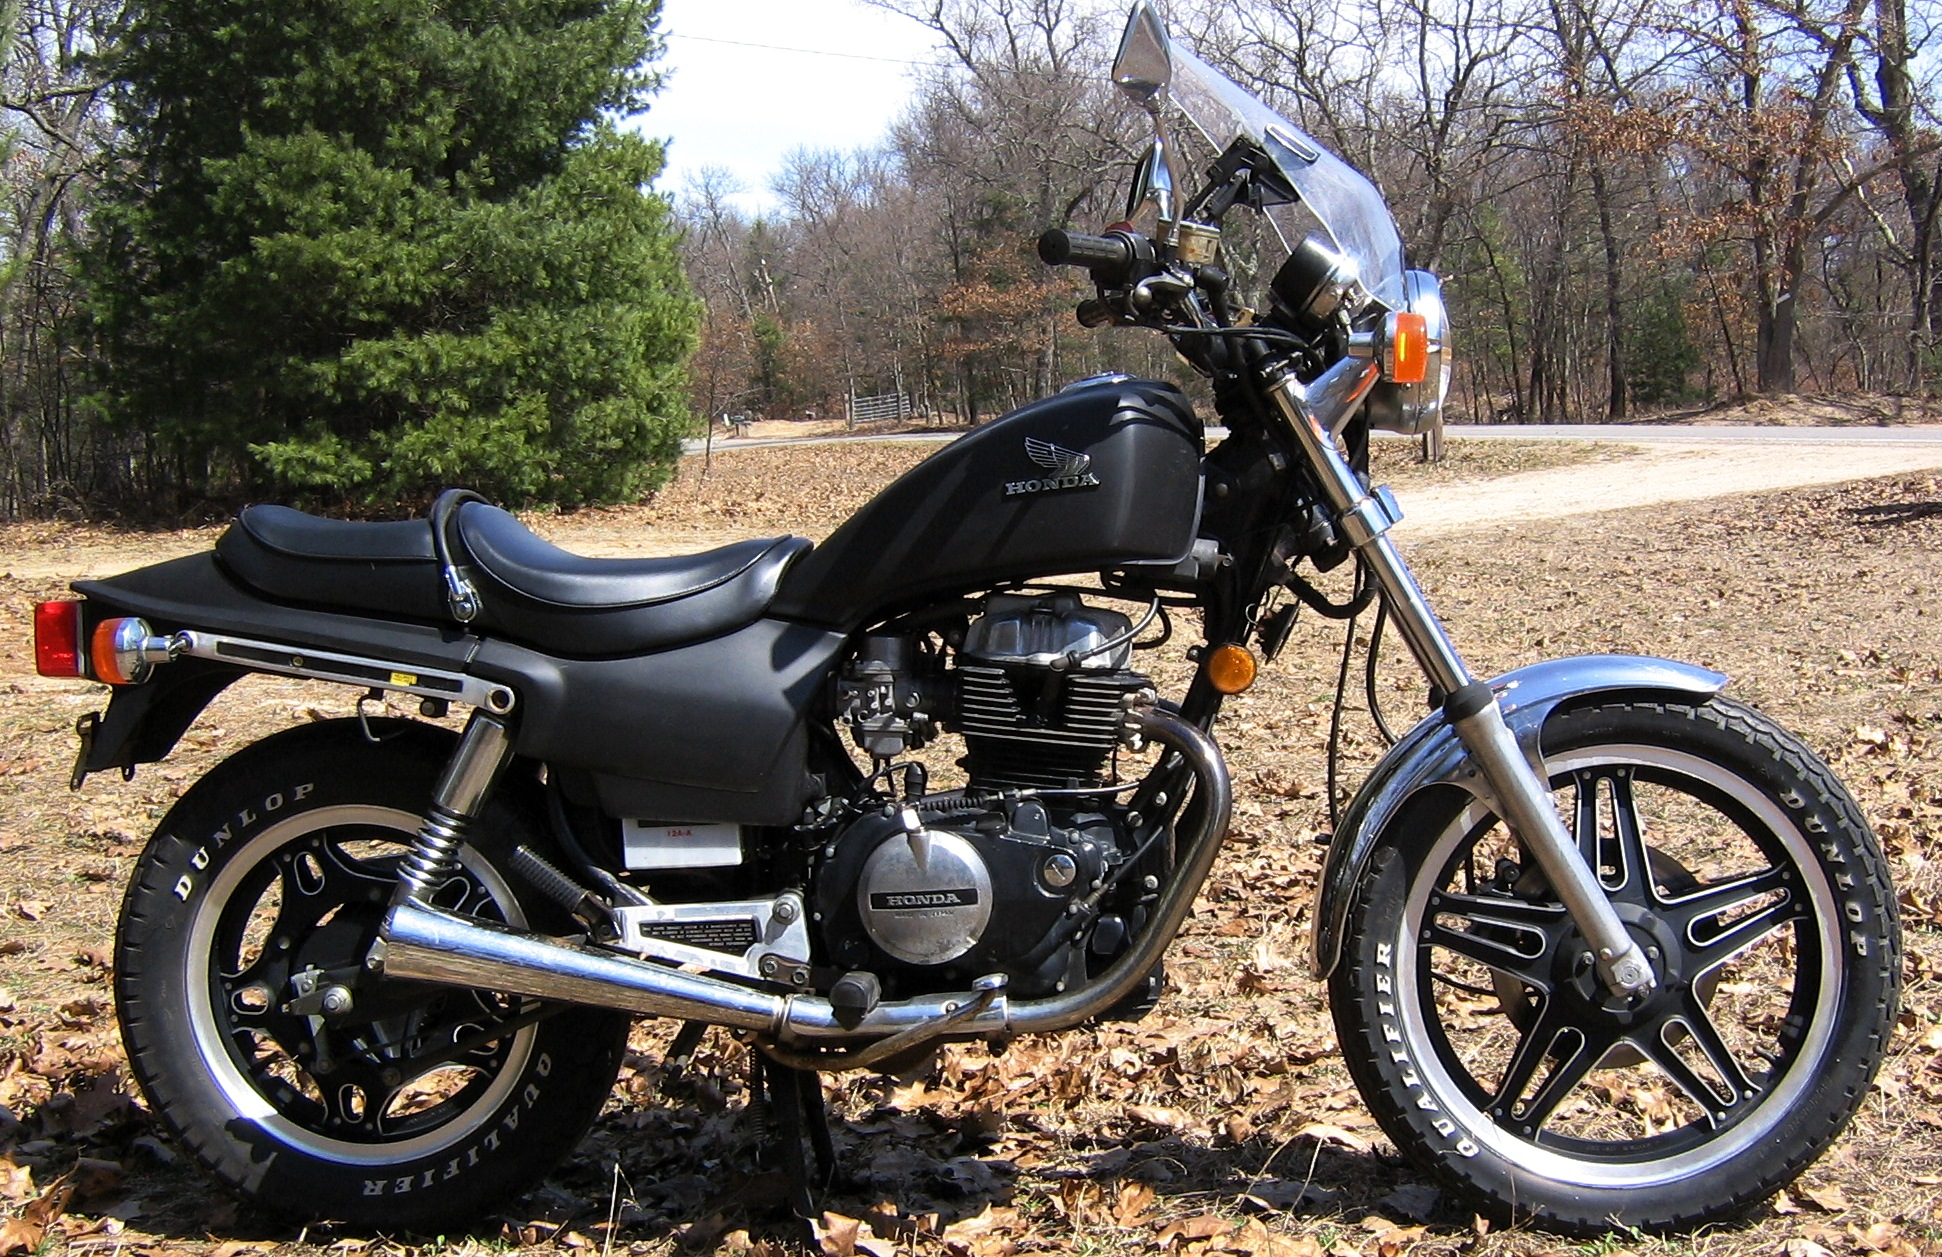 just bought a 1984 honda nighthawk 450 for $1000 - thoughts???